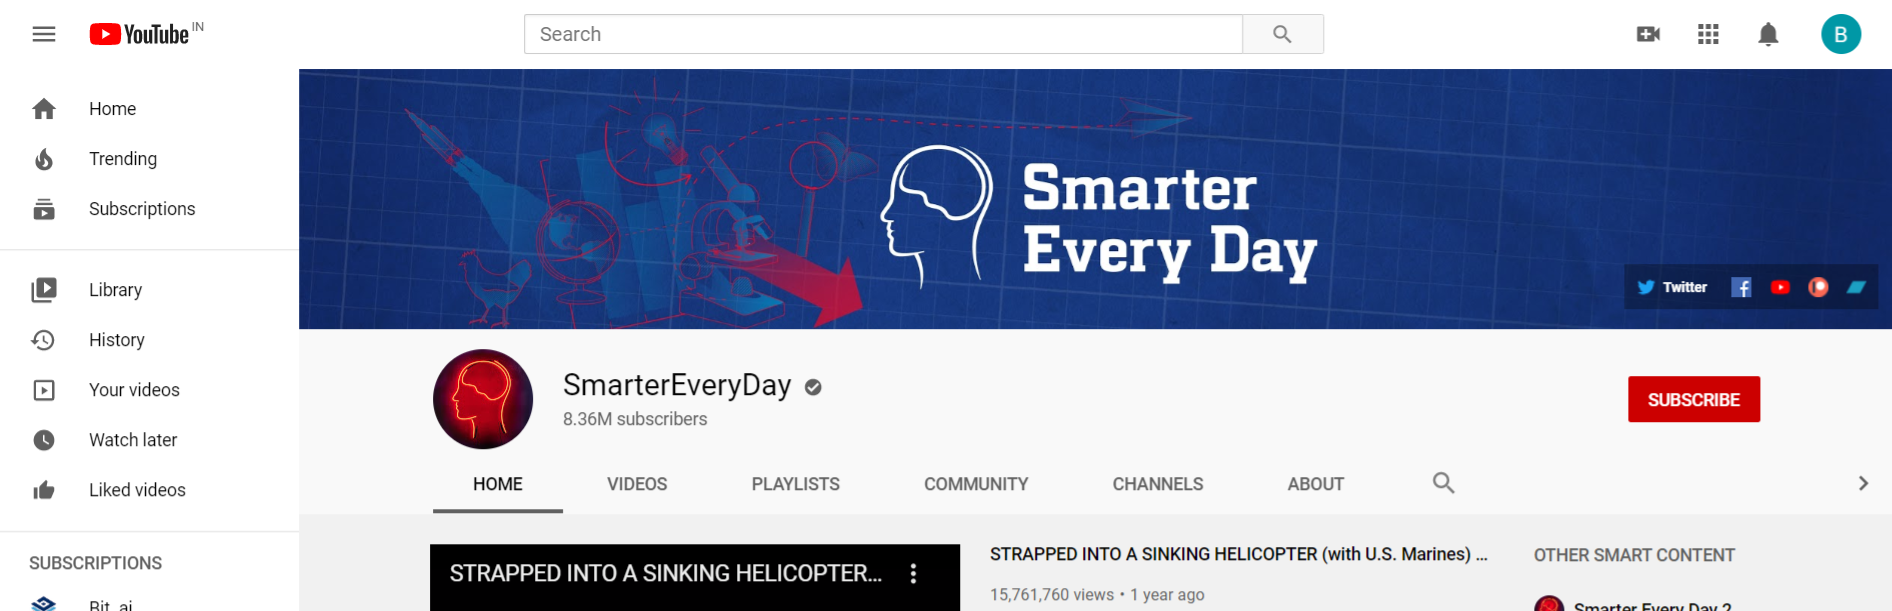 Smarter everyday: Edtech youtube channel